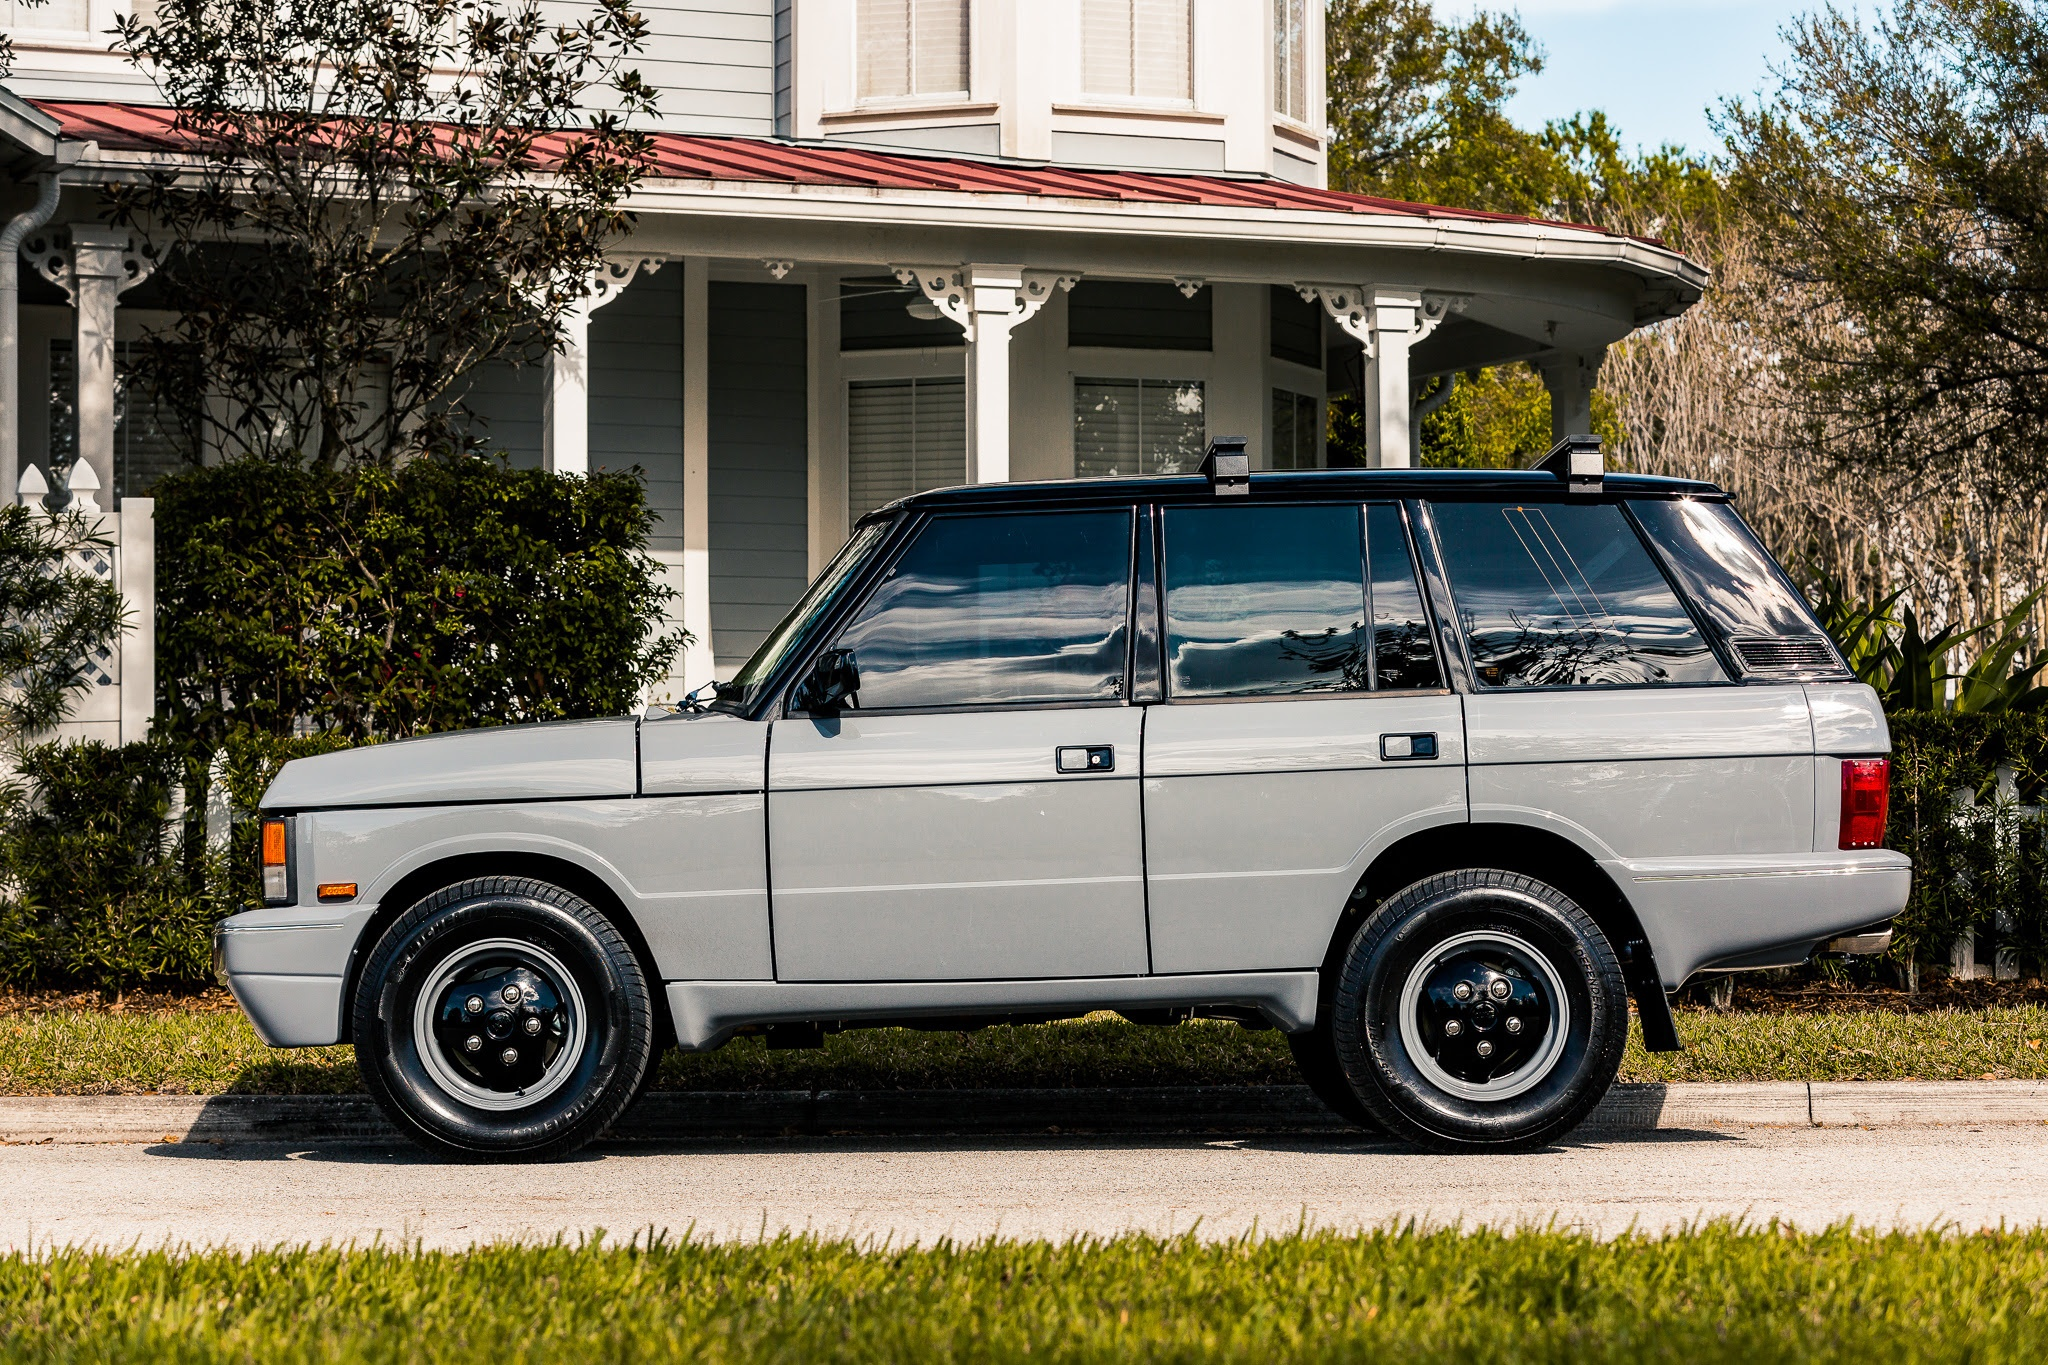 Stunning Range Rover Classic Twr Edition Finished In Popular Nardo Grey Unveiled By E C D Automotive Design Cerebral Overload